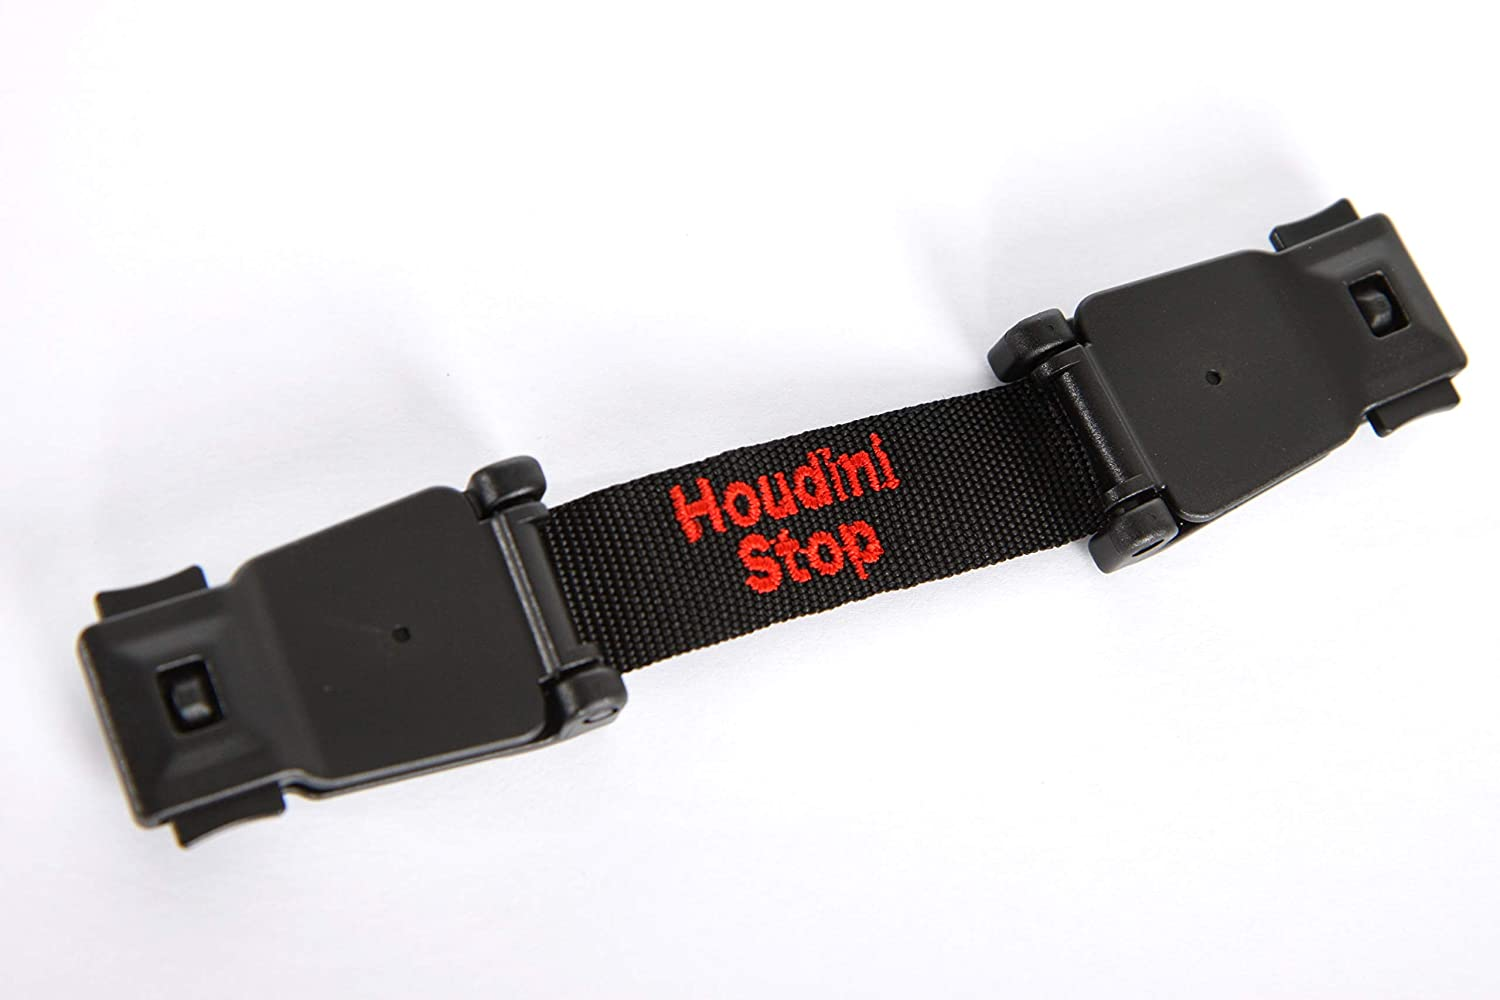 houdini stop  : Houdini Stop Car Seat Chest Clip (TWIN PACK): Baby